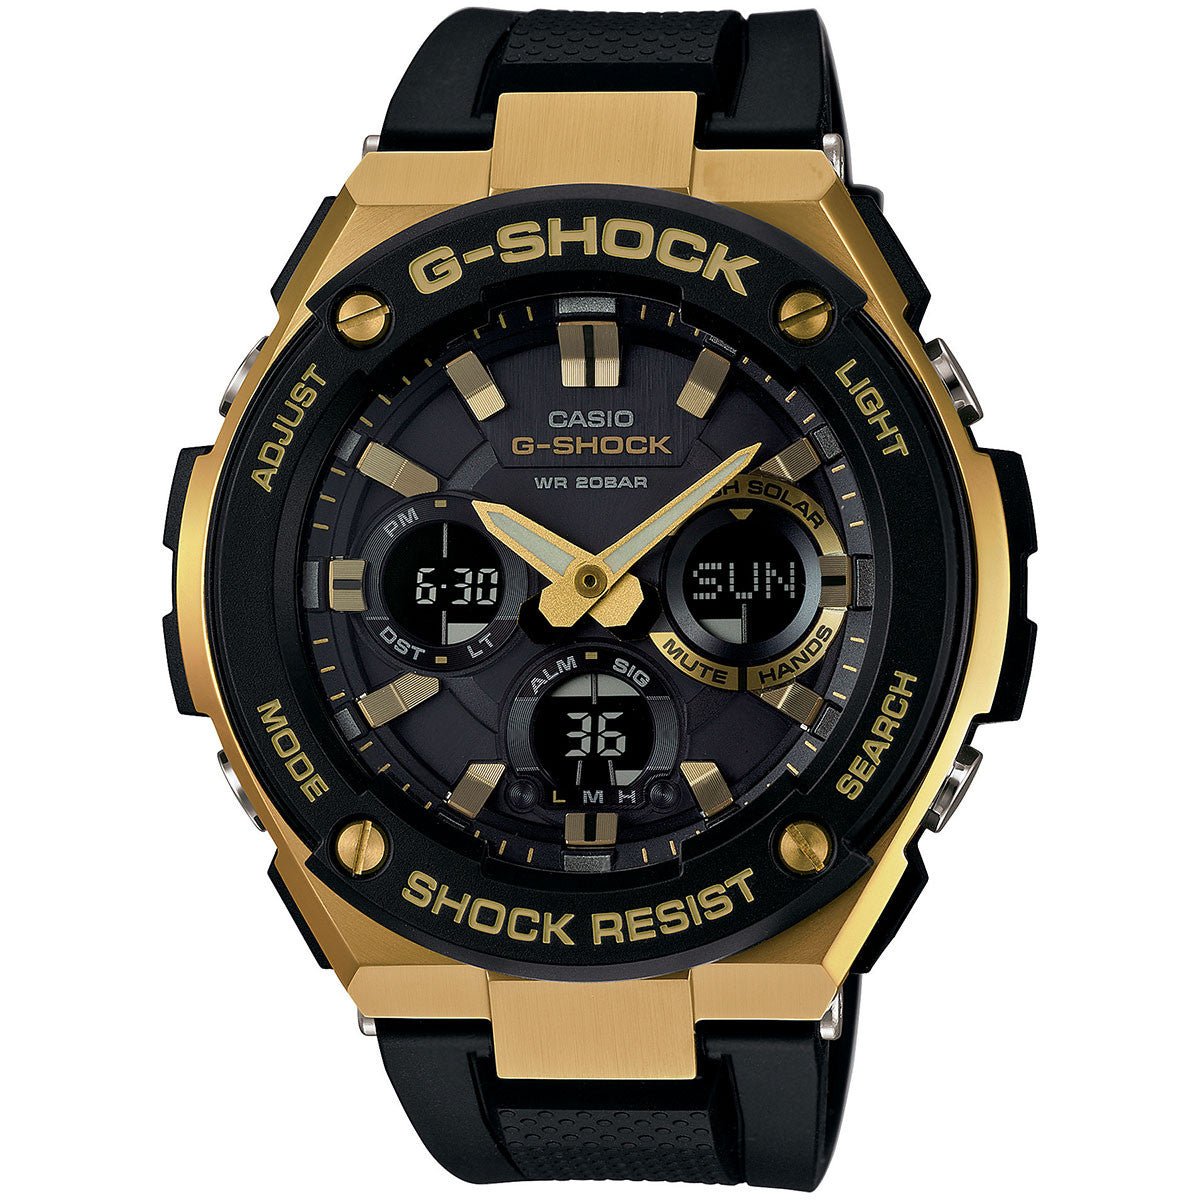 Casio G-Shock G-Steel Layer Guarded Structured Gold Case Chronograph Watch GSTS100G-1A